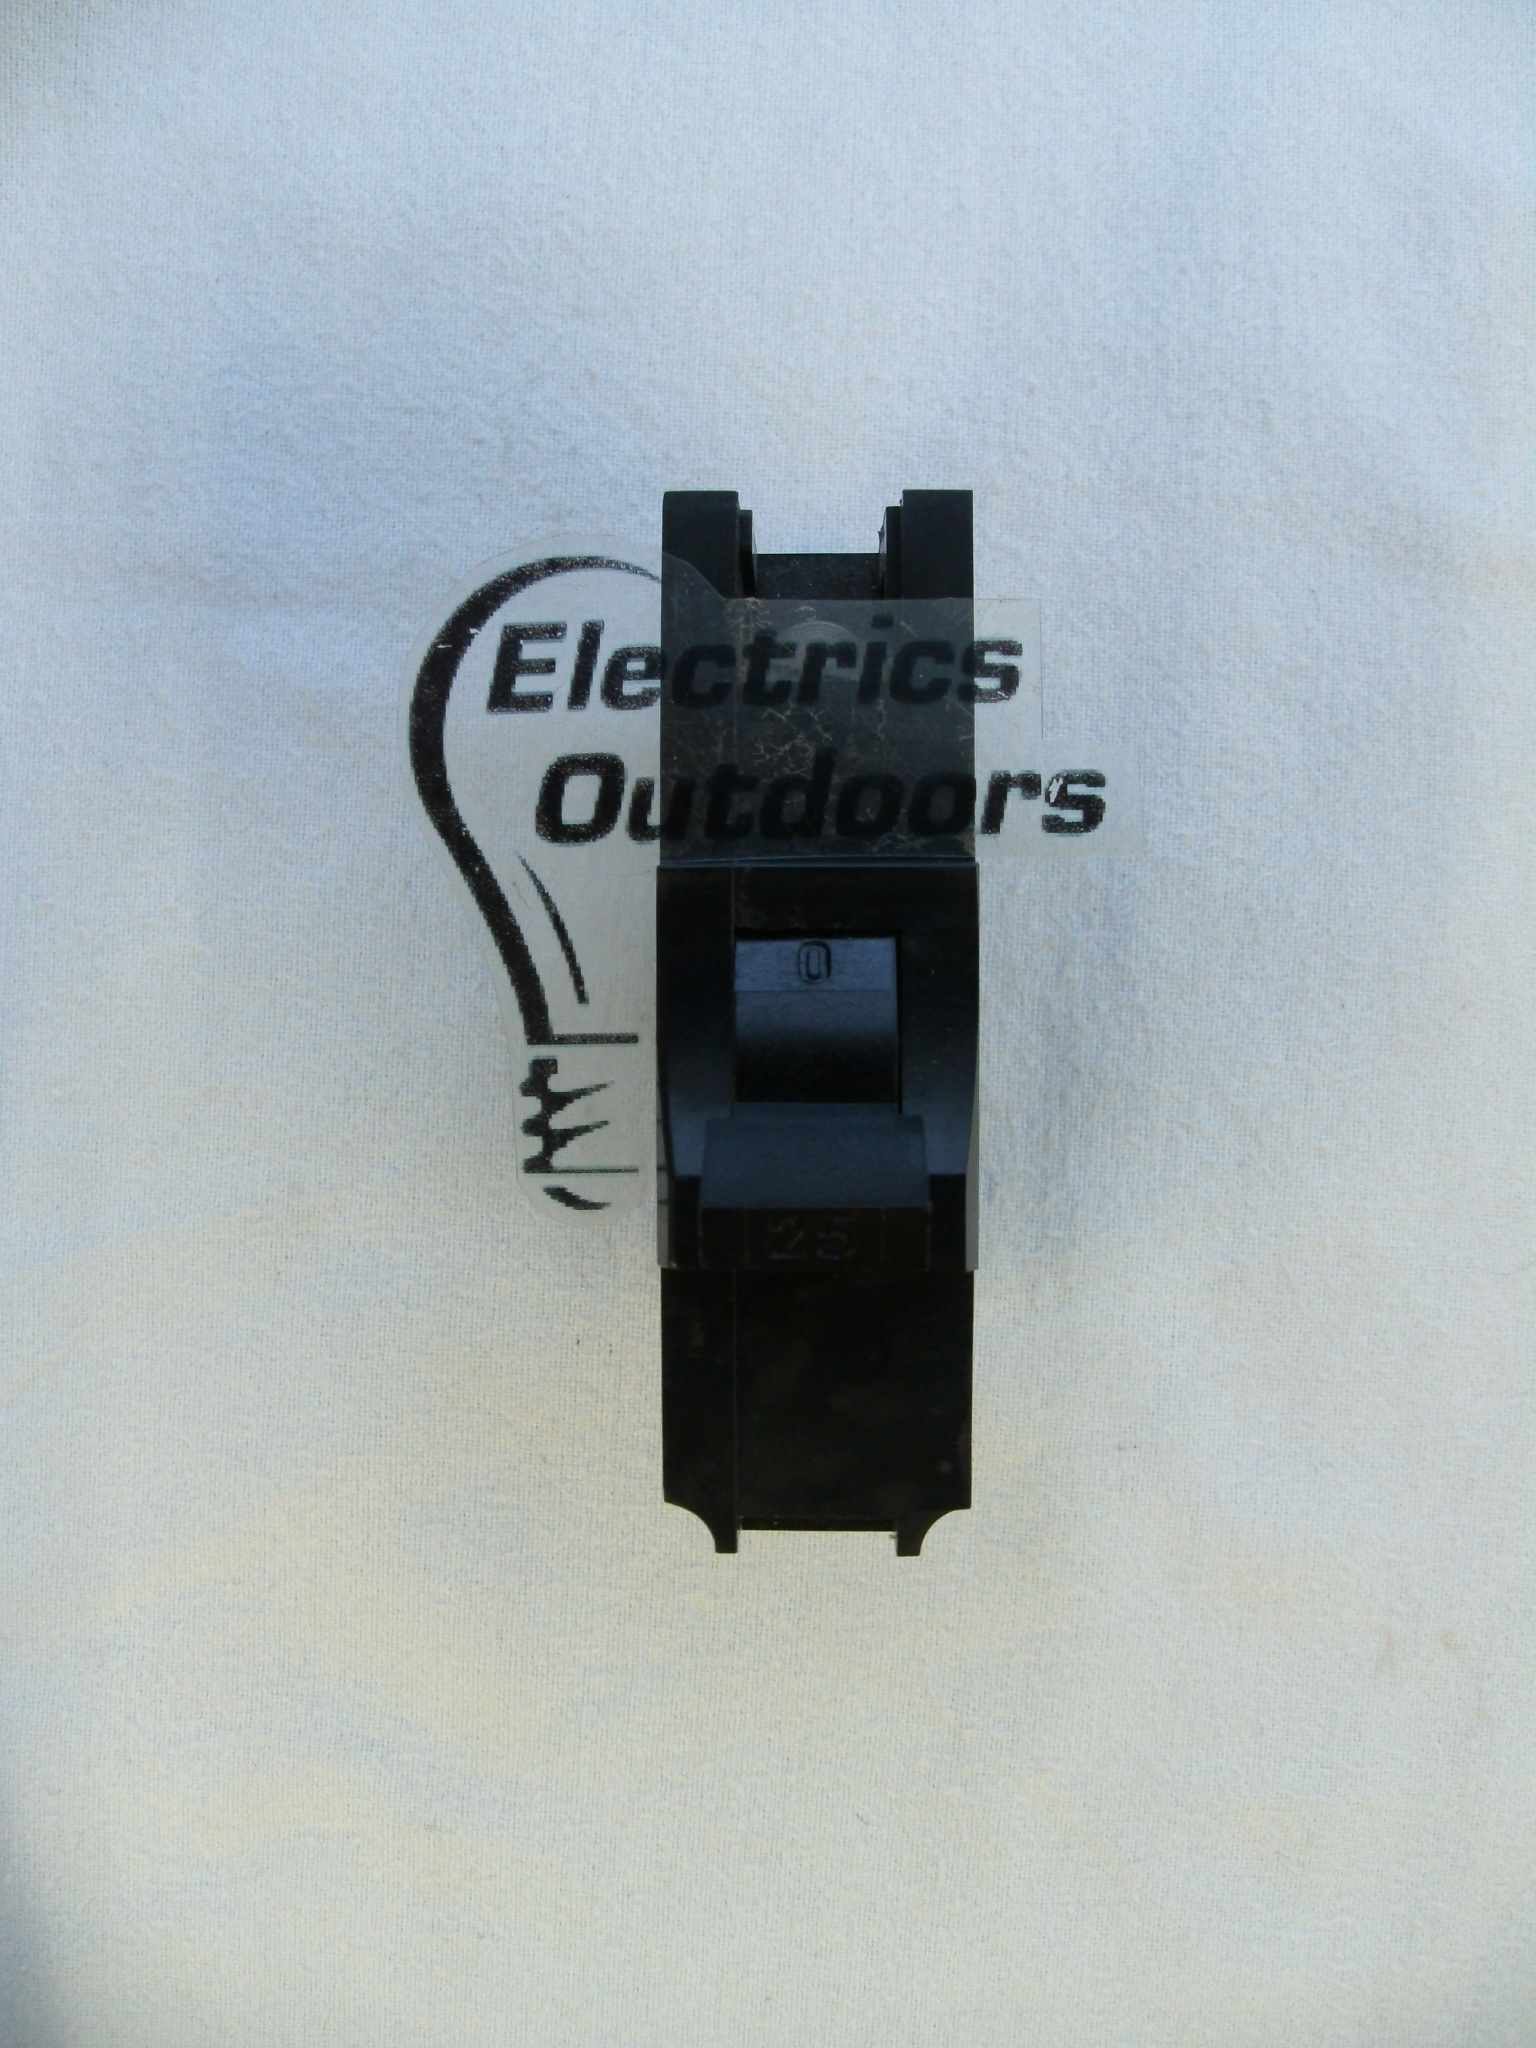 FEDERAL ELECTRIC 25 AMP MCB CIRCUIT BREAKER STAB-LOK